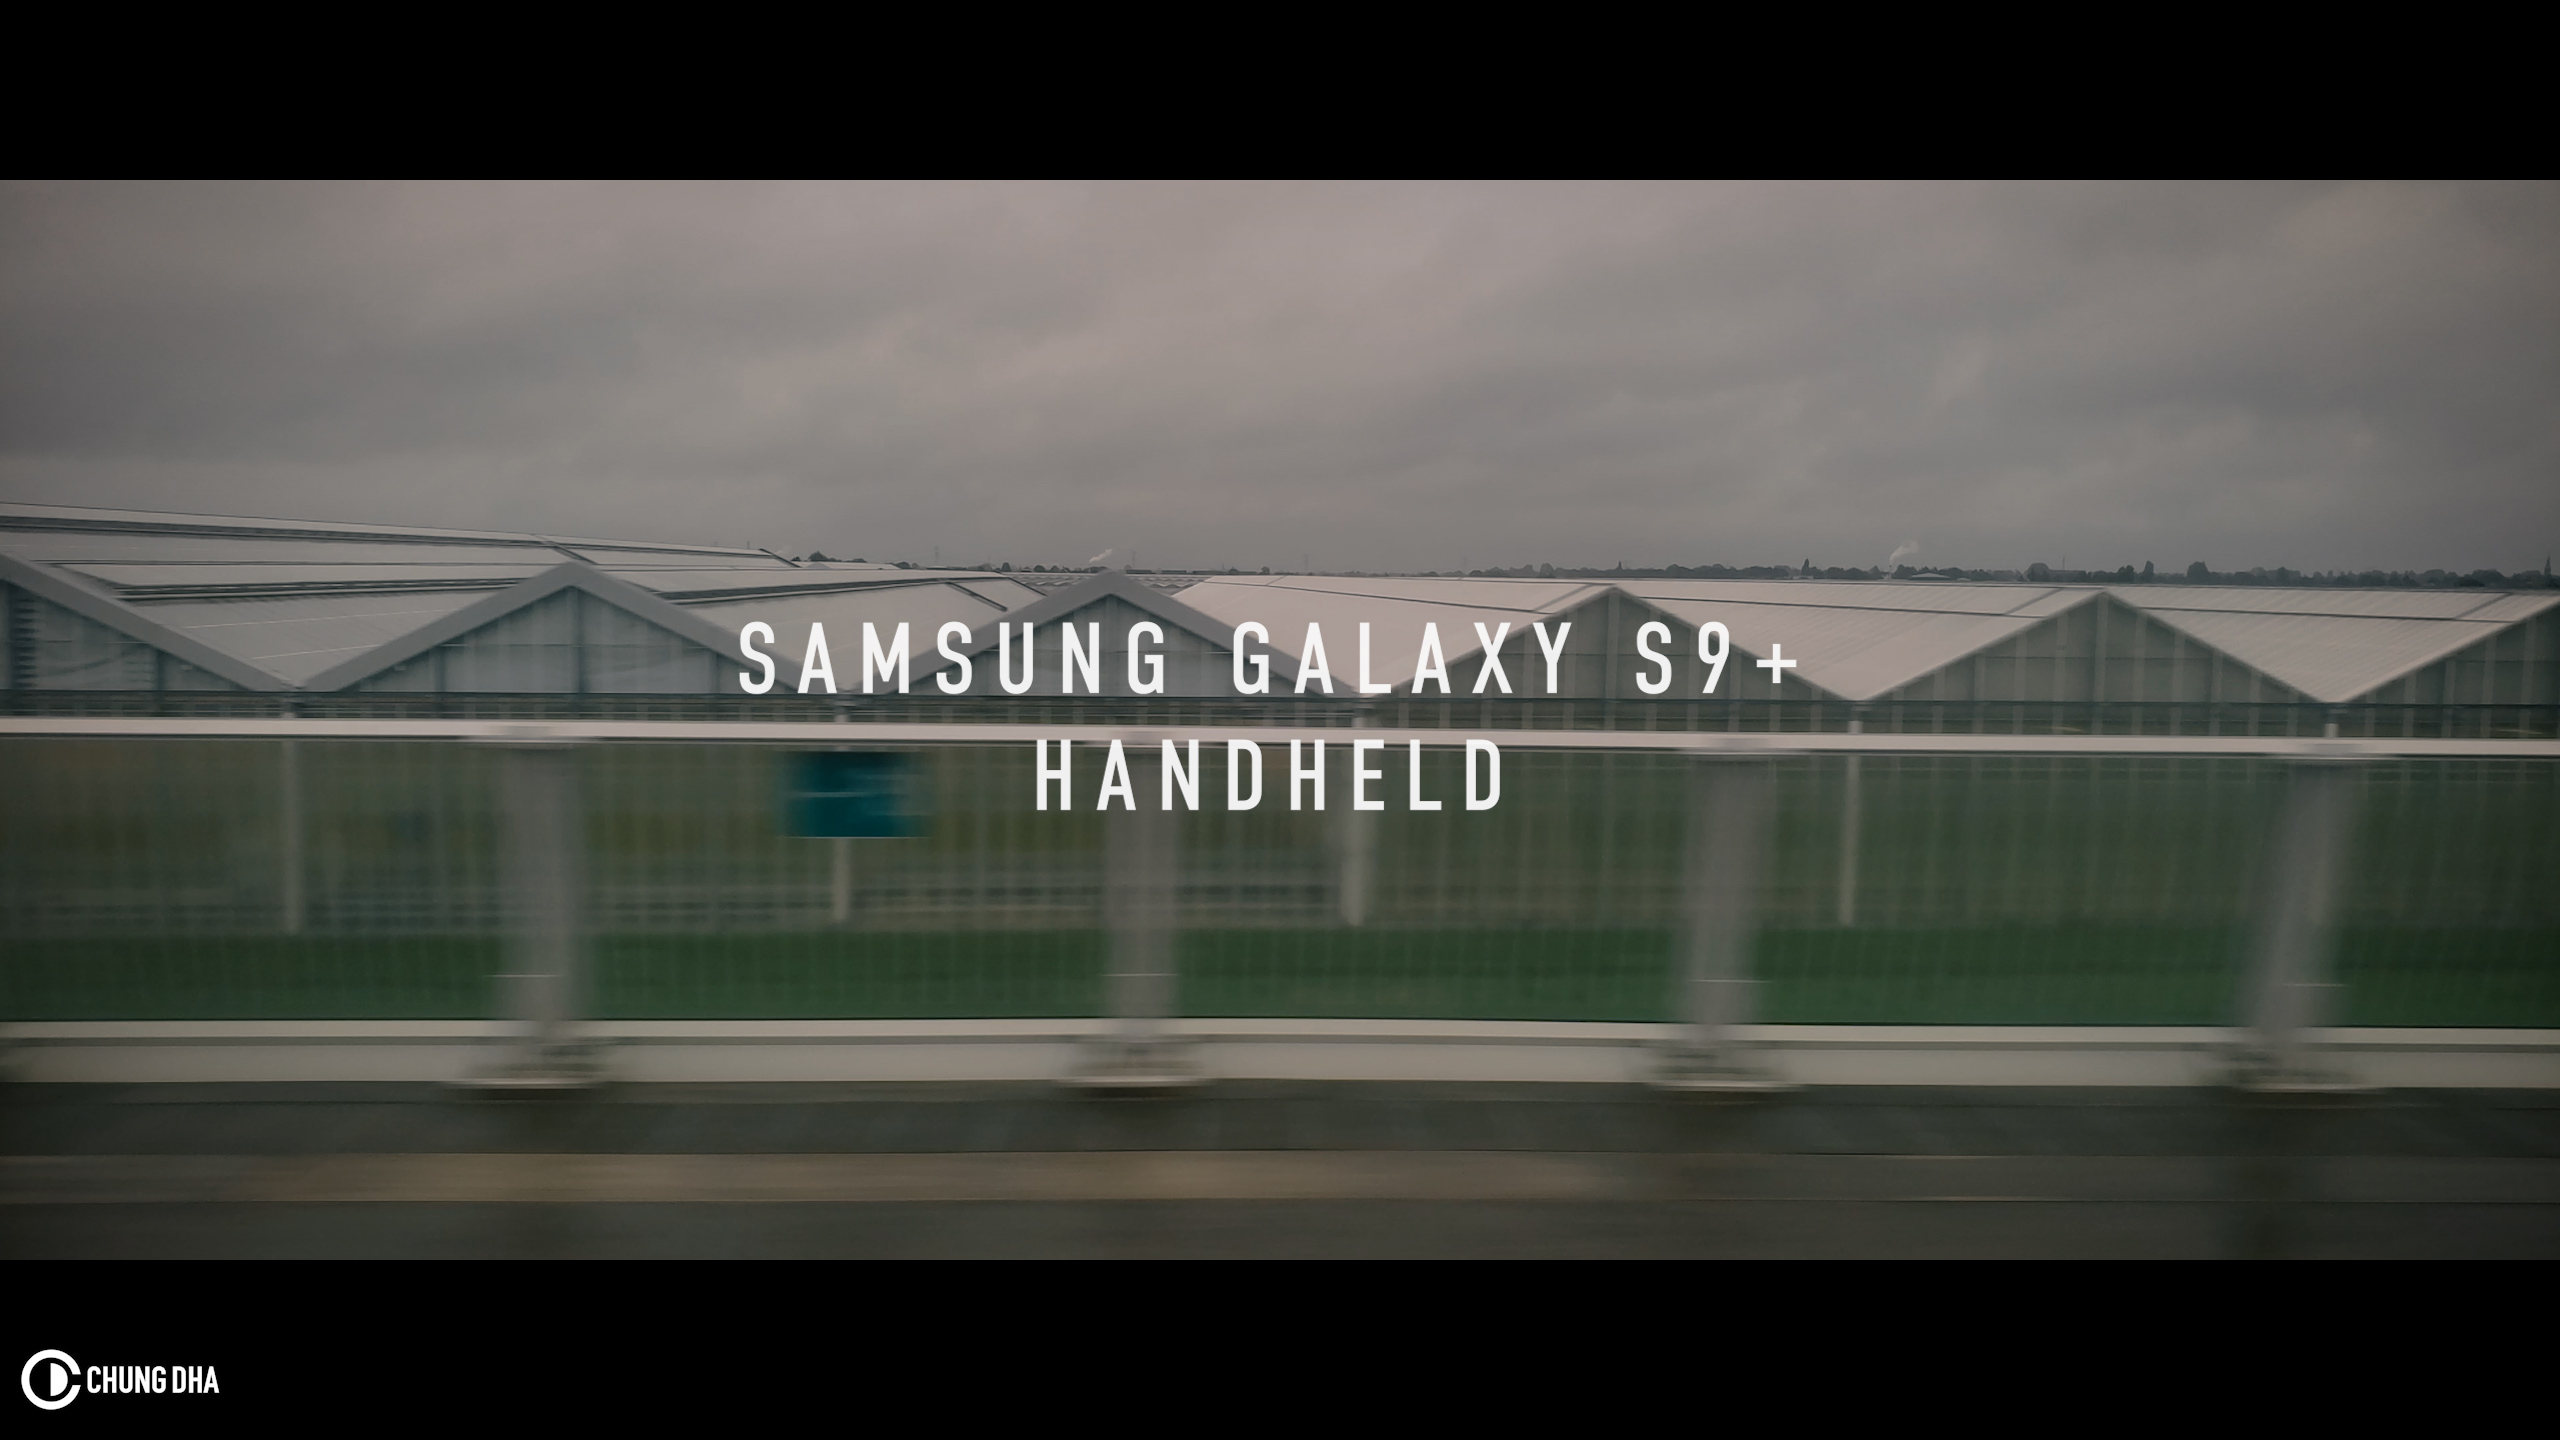 Vlog to NL Handheld with Samsung Galaxy S9+